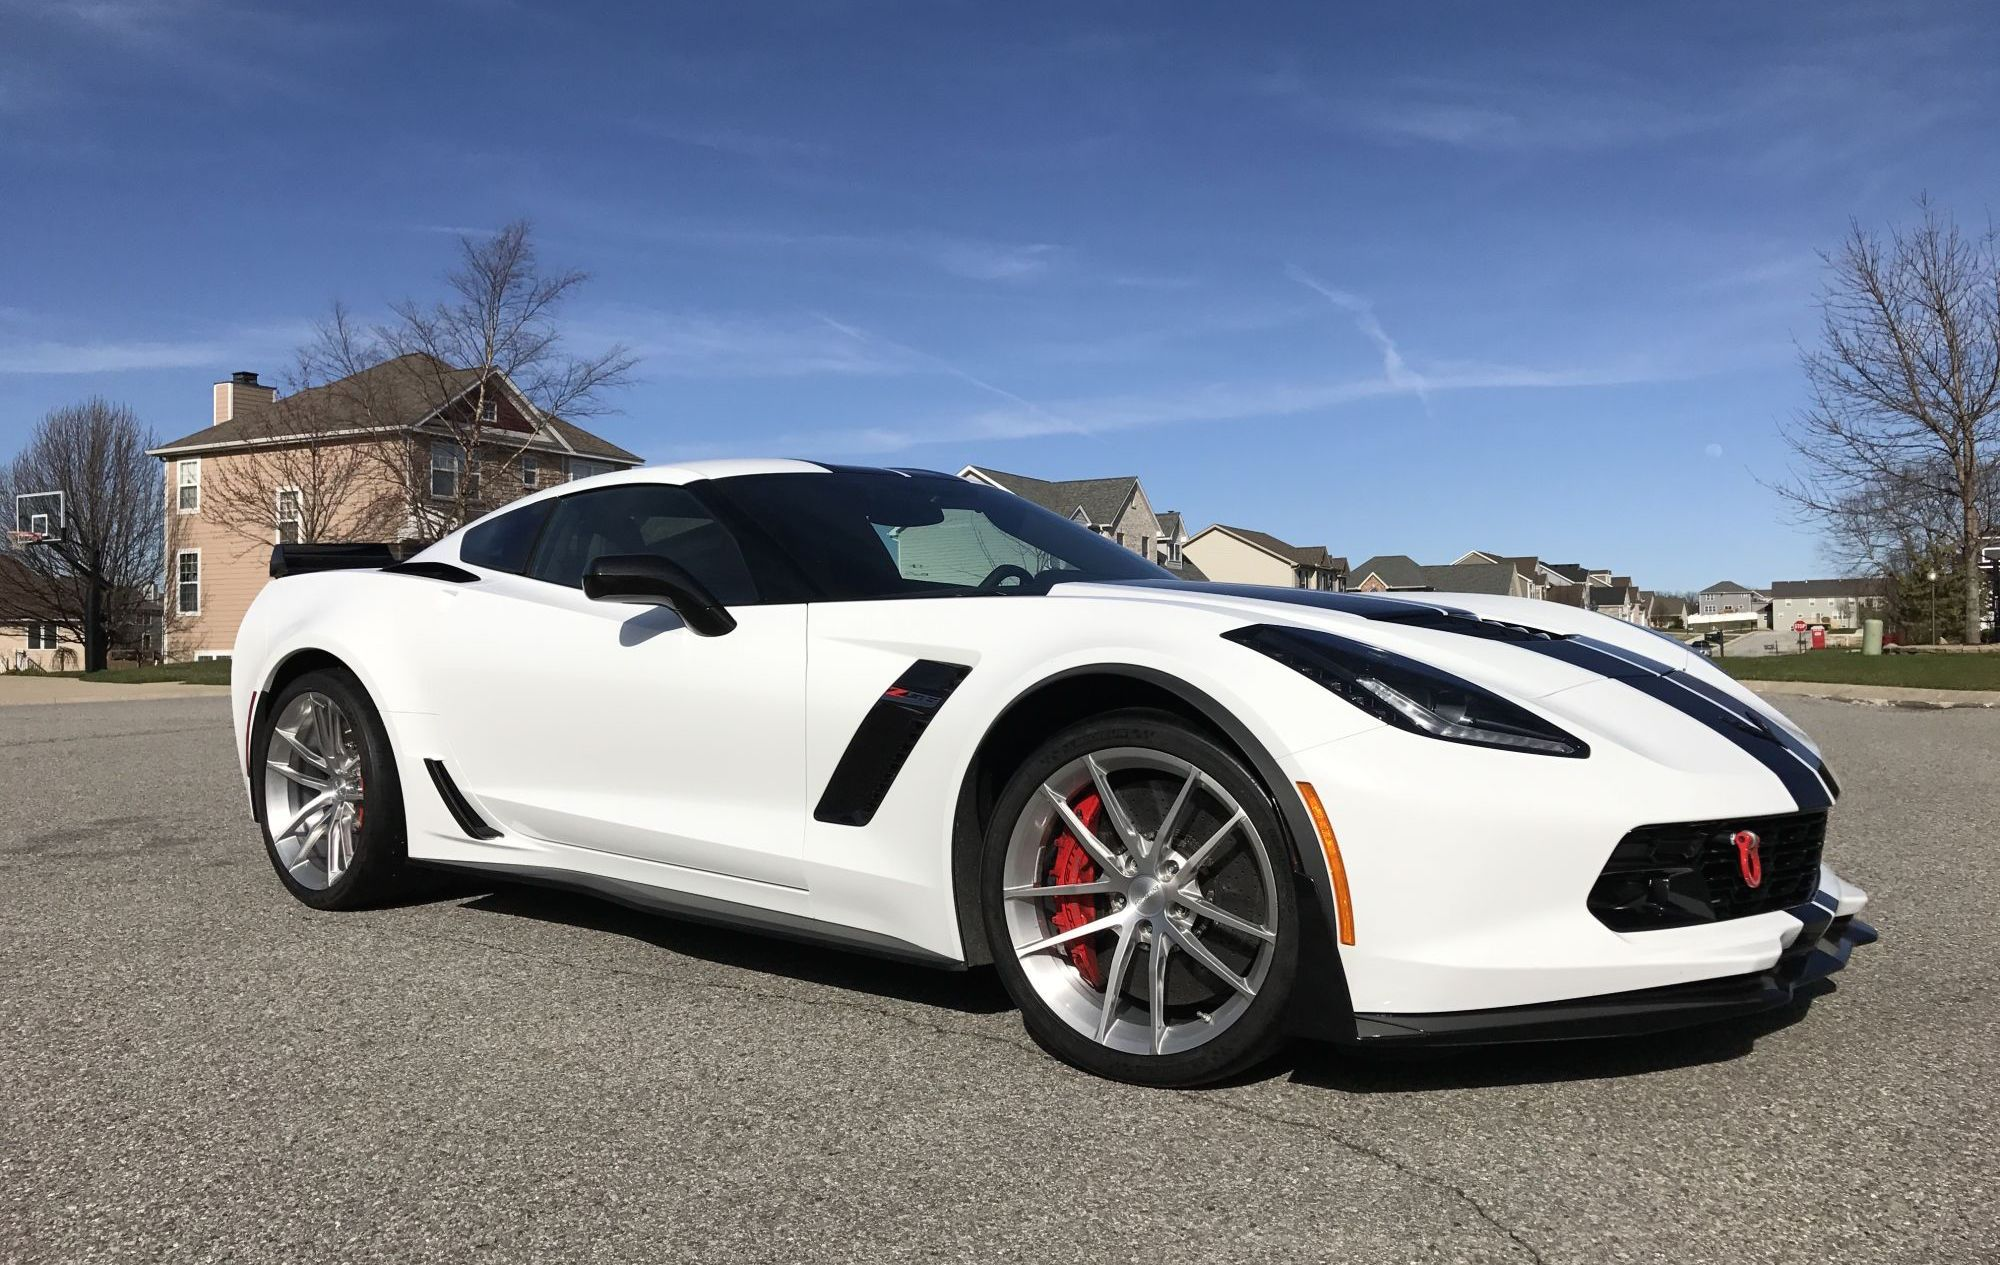 Is chevrolet s c7 corvette z06 with the z07 package the best performance value